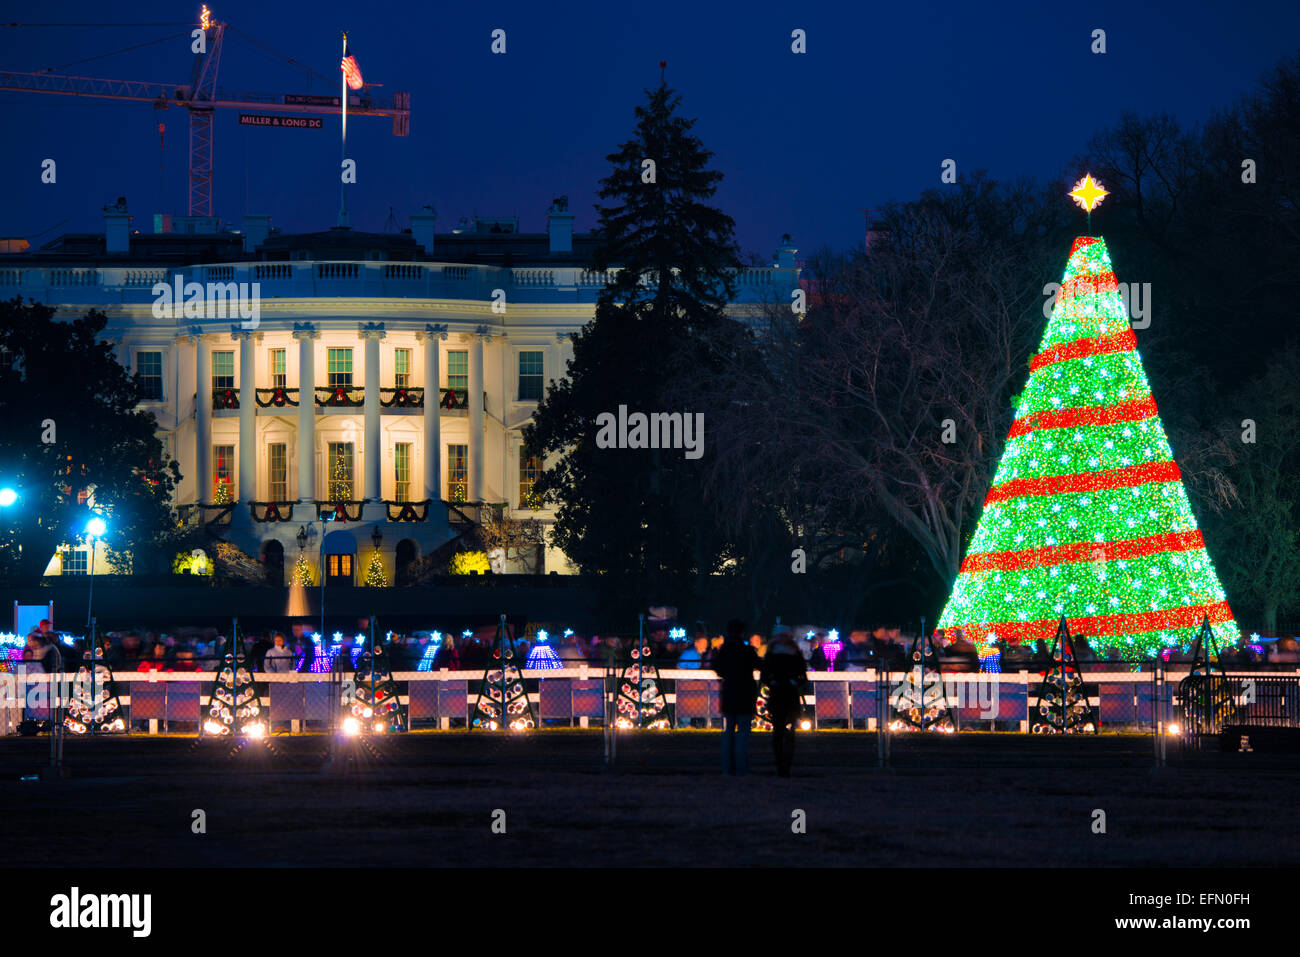 Dc Christmas Tree Part - 46: Stock Photo - The White House Christmas Tree On The Ellipse In Washington DC.  The South Portico Of The White House Is In The Background